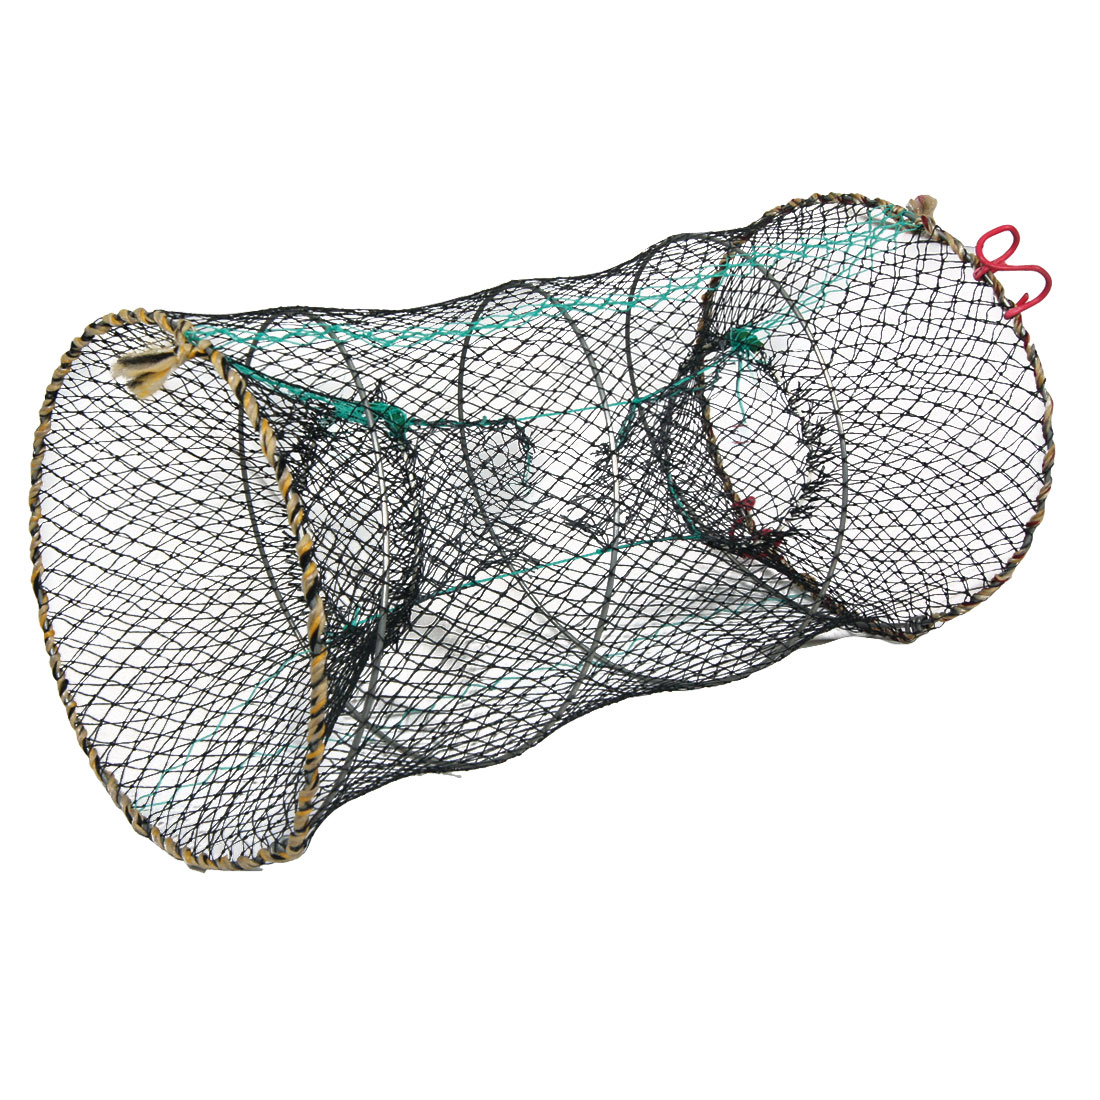 Crab Crawfish Lobster Shrimp Collapsible Cast Nylon Net 25cm x 45cm